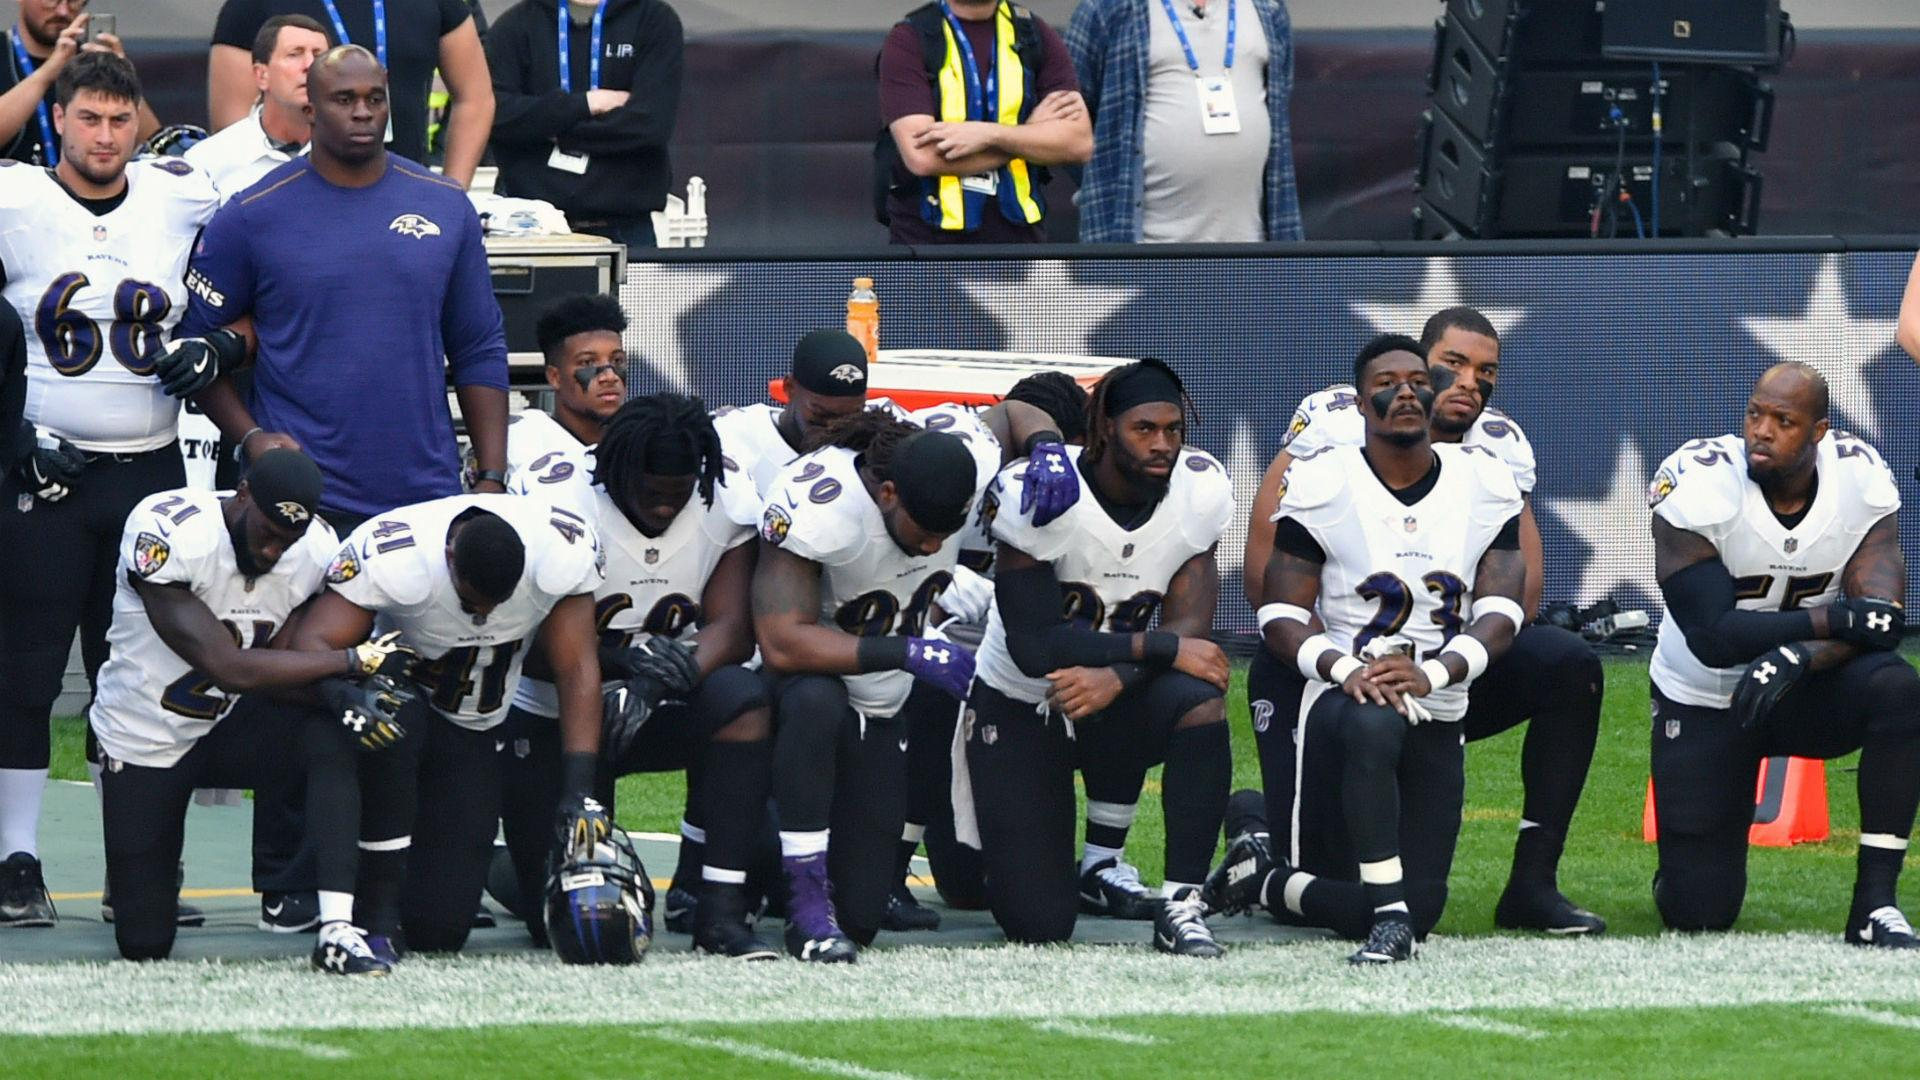 NFL players take a knee at Wembley after criticism from ...